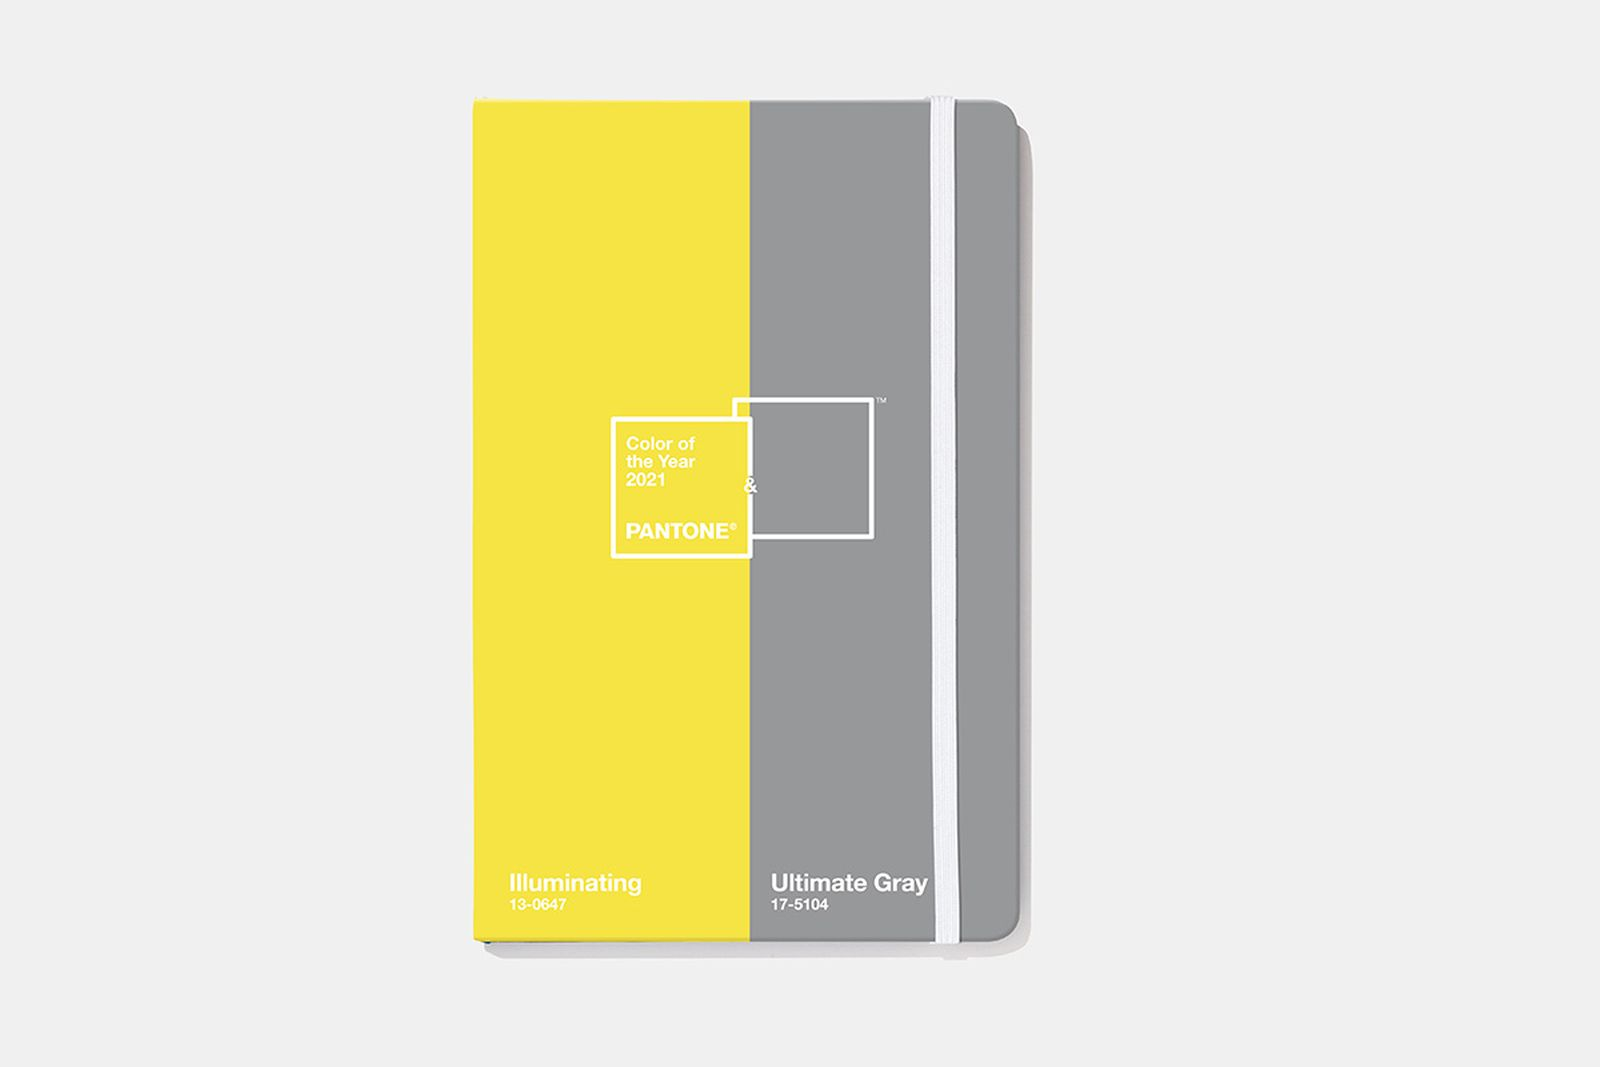 pantone-color-of-the-year-2021-journal